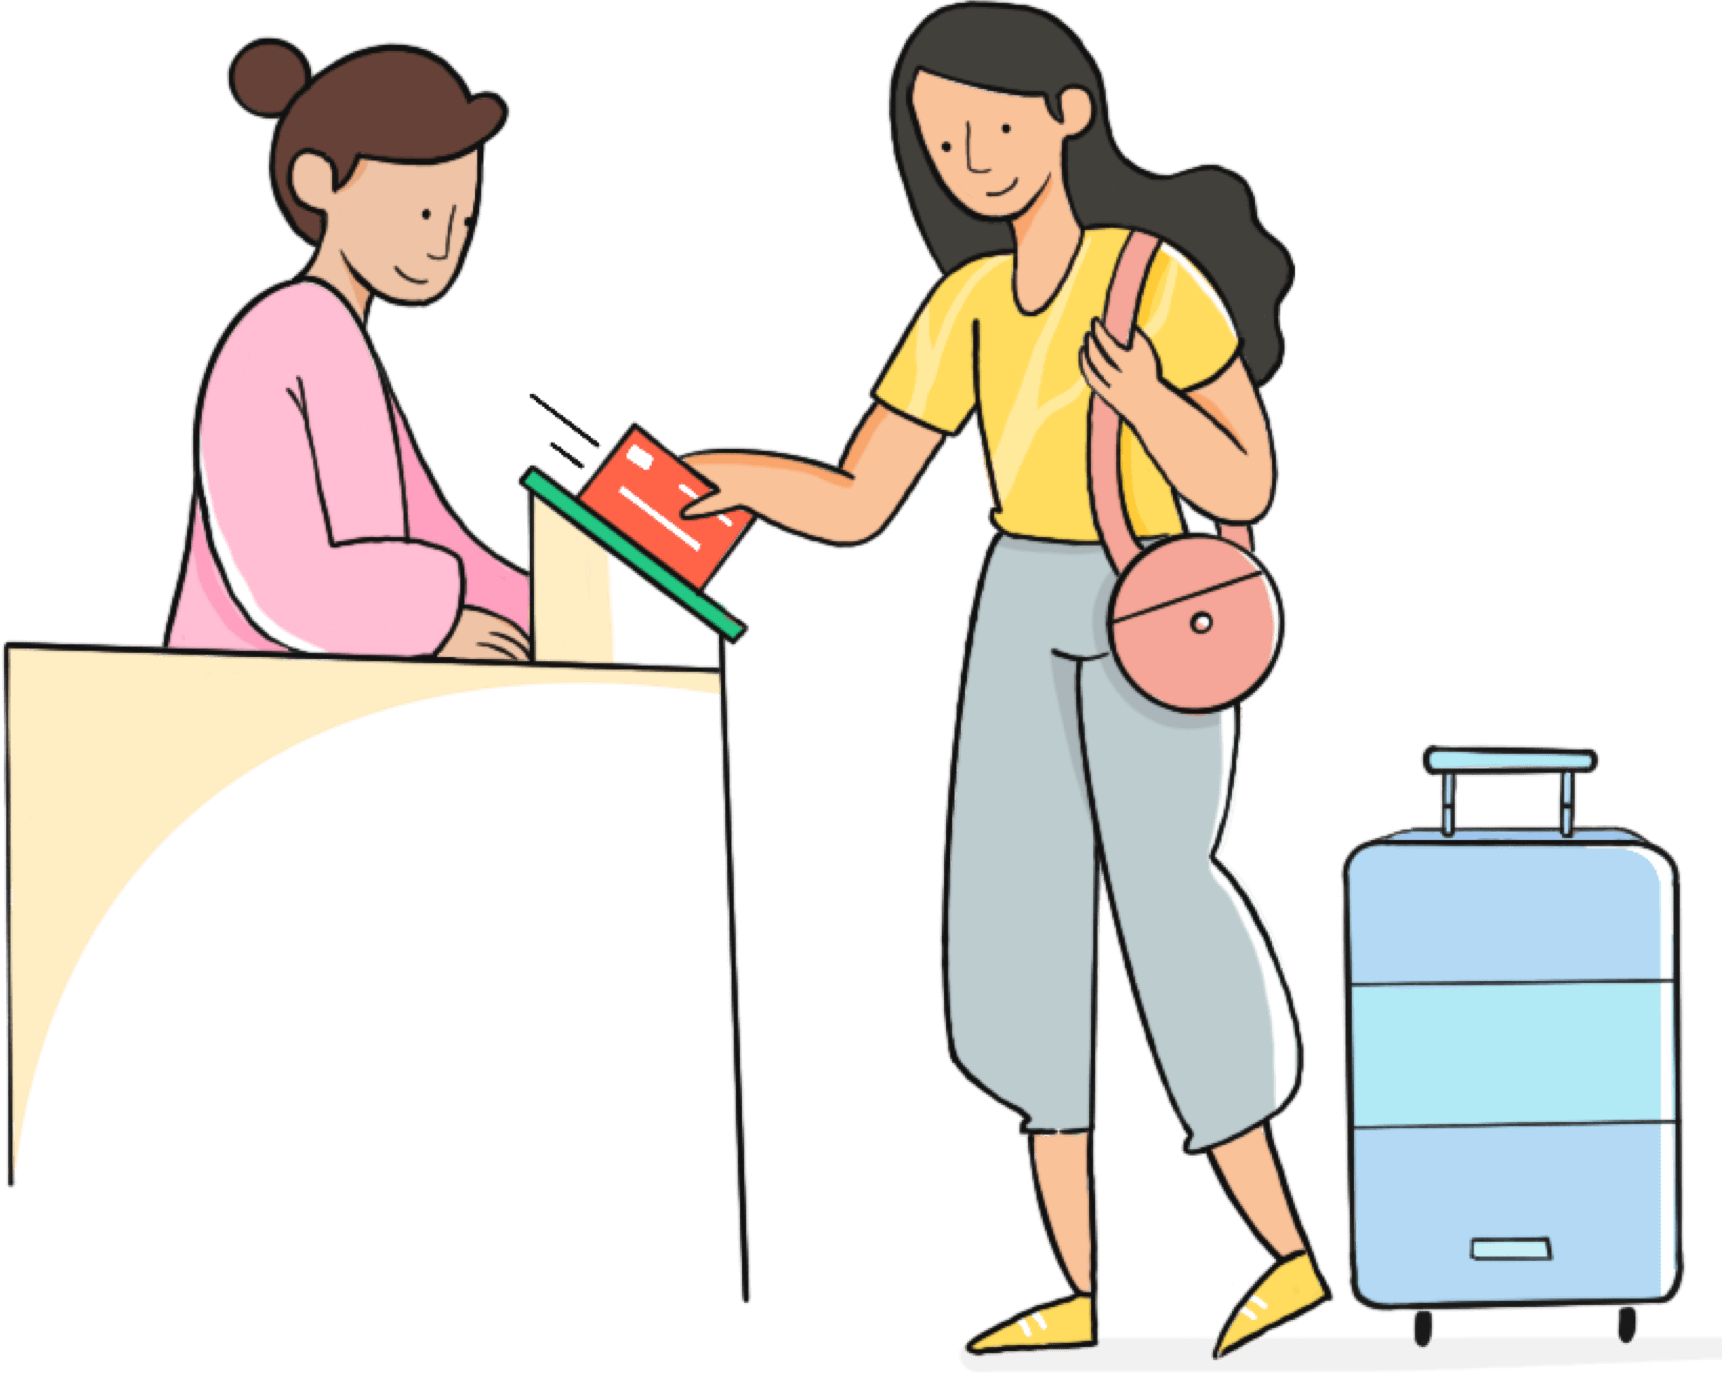 An employee swipes her physical card at an Airport on her way to a company retreat